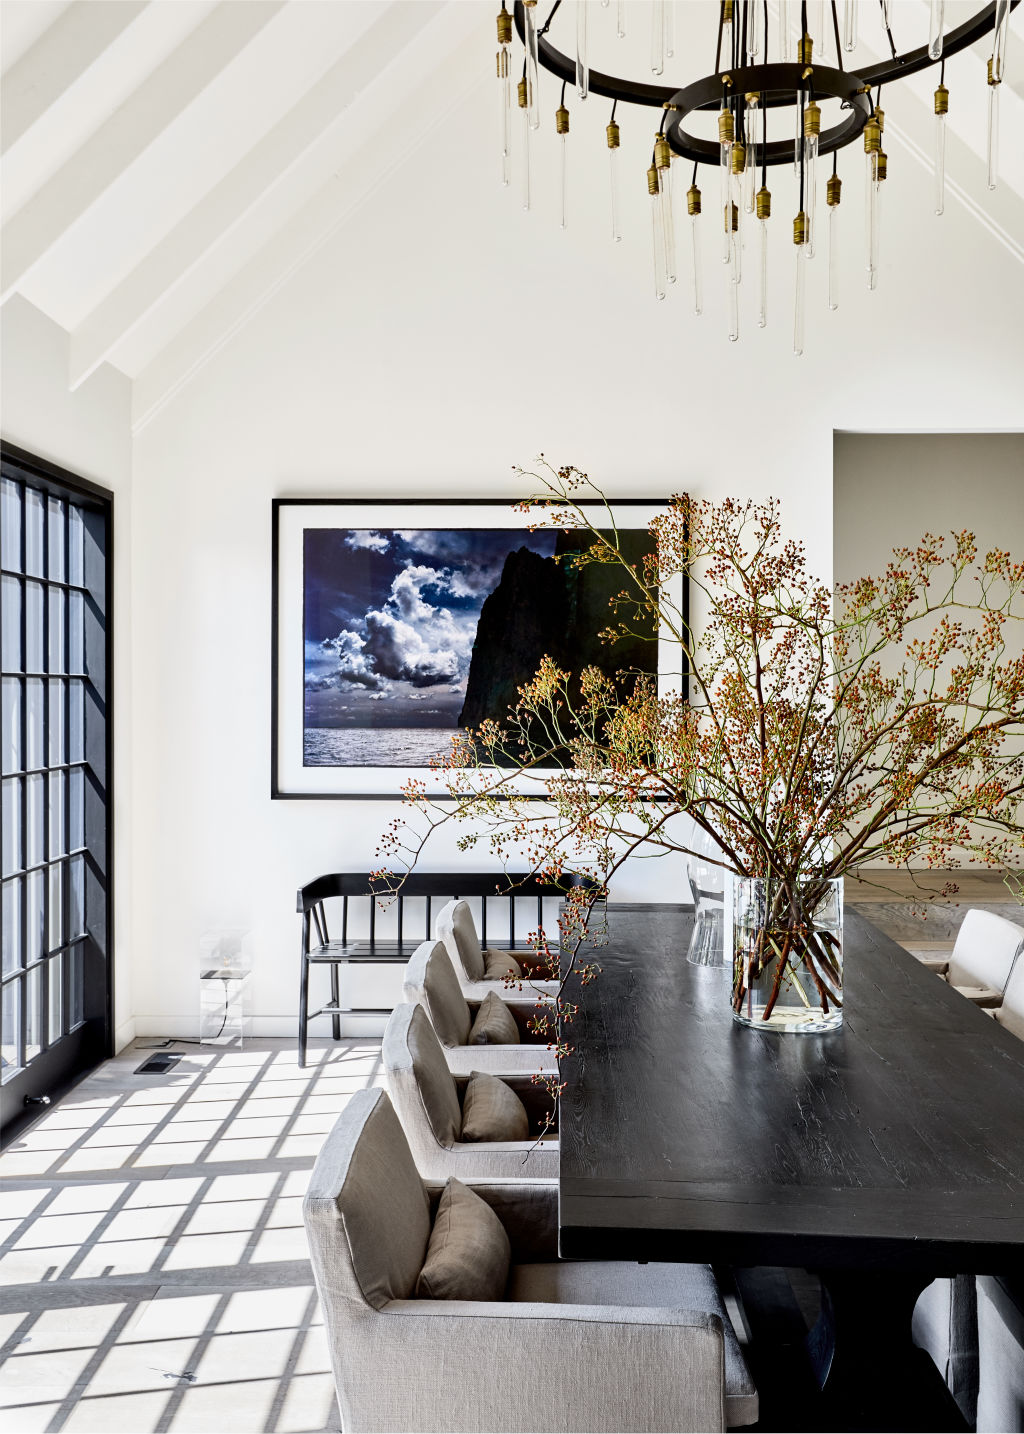 'We love the idea of the dining table working as an entrance table too', Chyka tells, 'I always fill the large vase with whatever is in seasonally, and because the space is neutral it can take any colour or style.' The photo on the wall is of Capri by Bill Henson. Light, table, and chairs are from Restoration Hardware. Black bench from House of Orange. Styling: Lucy Feagins